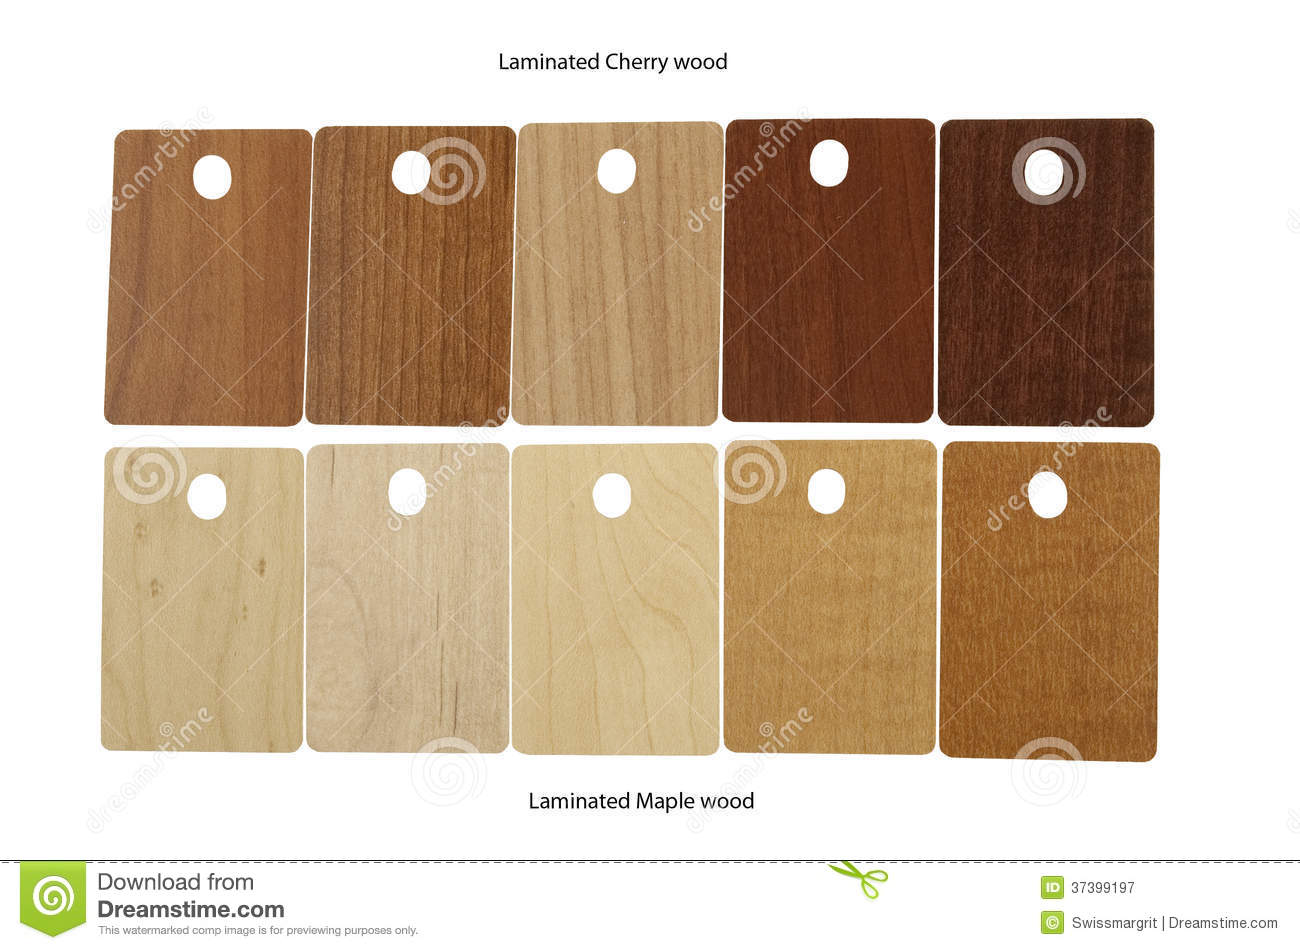 Laminated Samples Of Cherry Wood And Maple Wood Stock